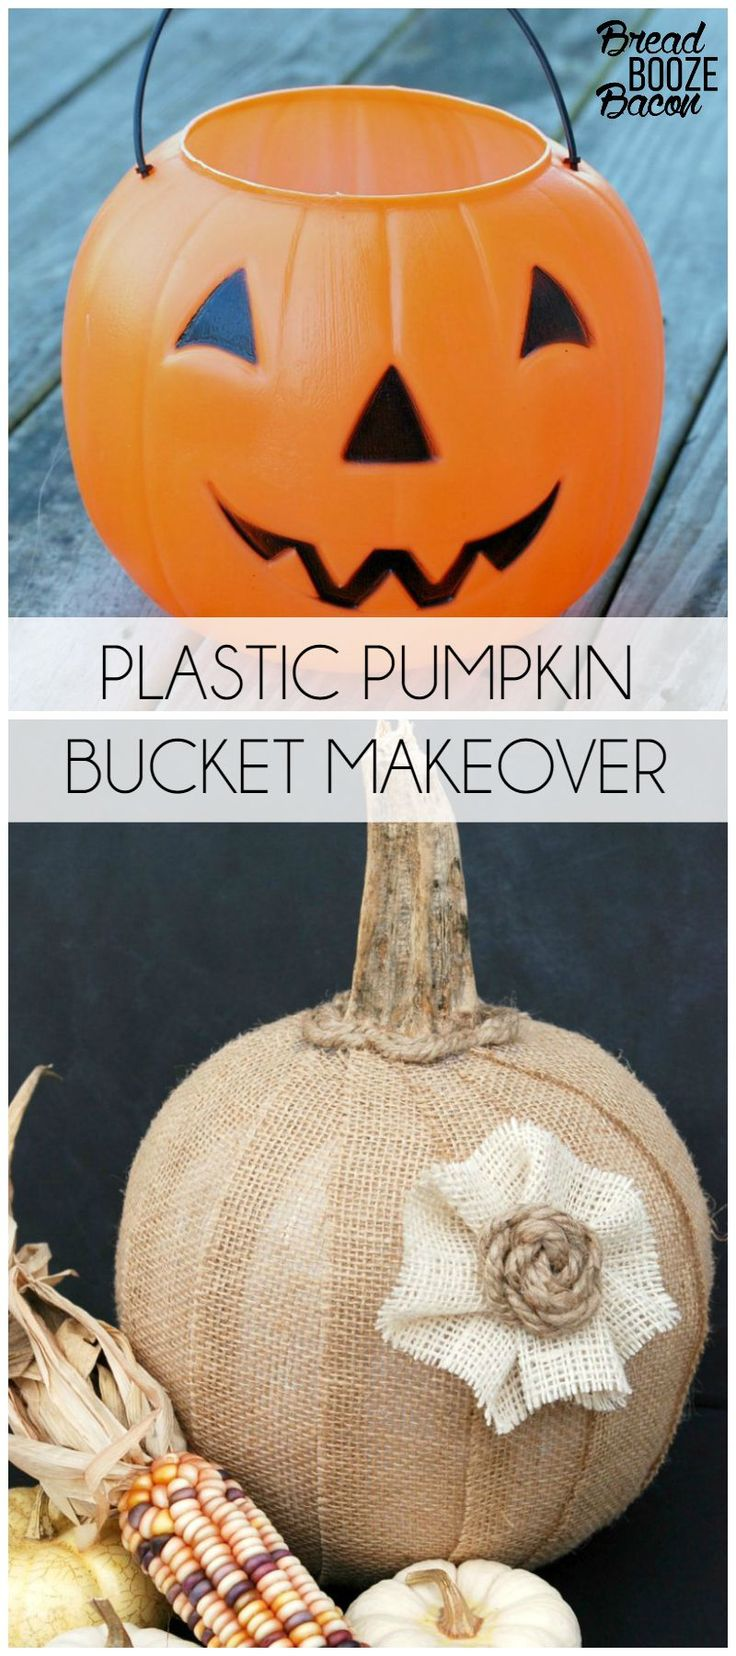 Can you believe that used to be a cheap orange plastic bucket?!? It's kind of crazy to think about!